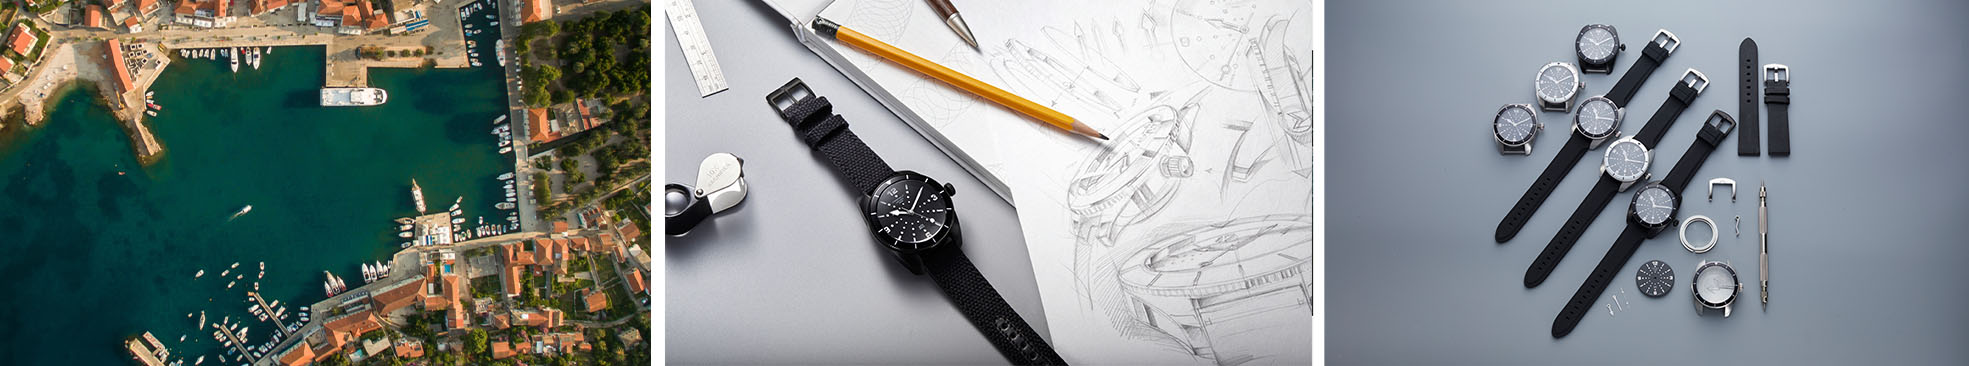 About Marnaut watches design process